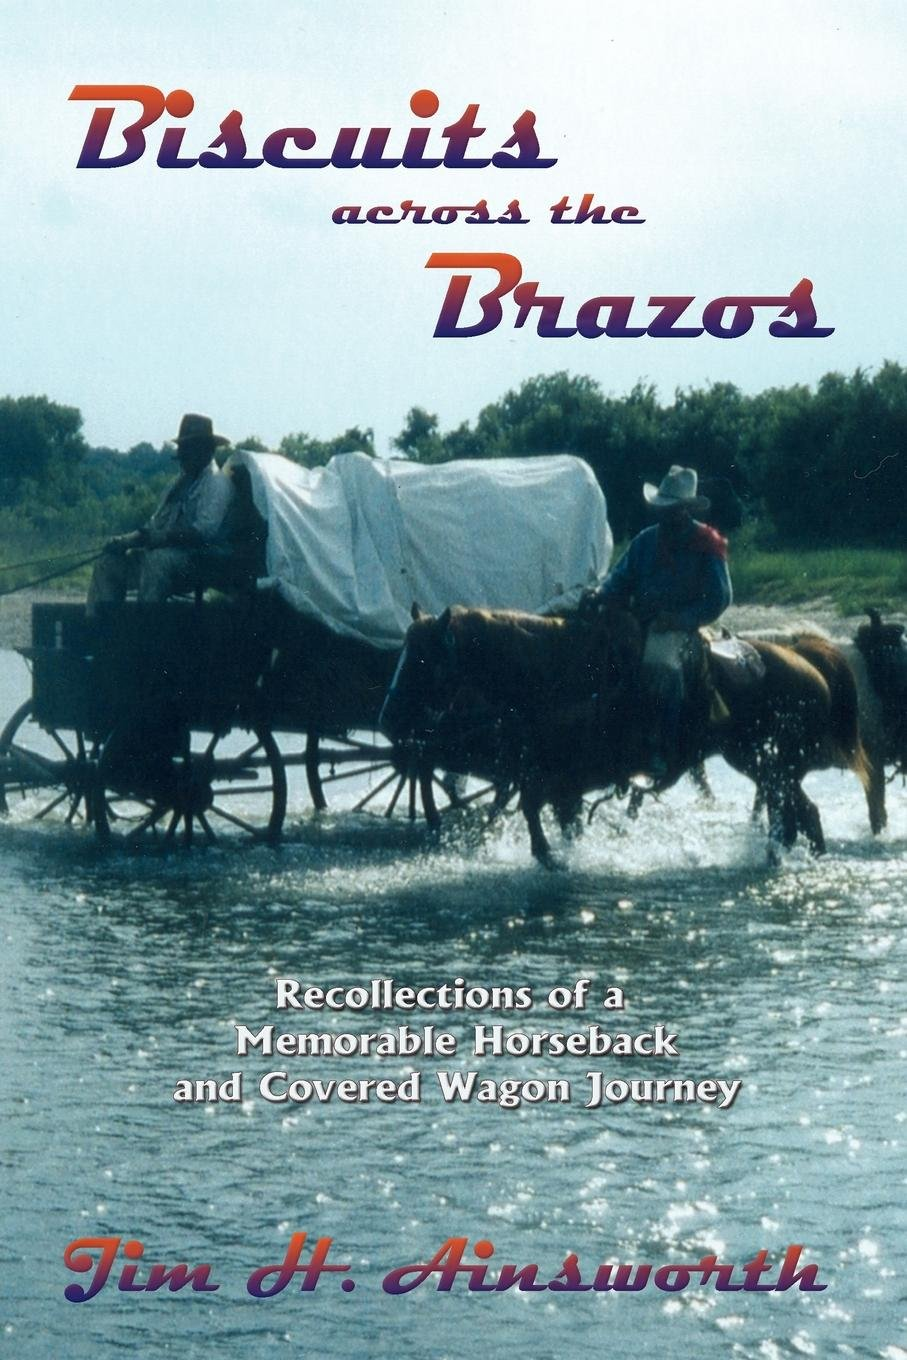 Read Online Biscuits Across the Brazos, Recollections of a Memorable Horseback and Covered Wagon Journey PDF